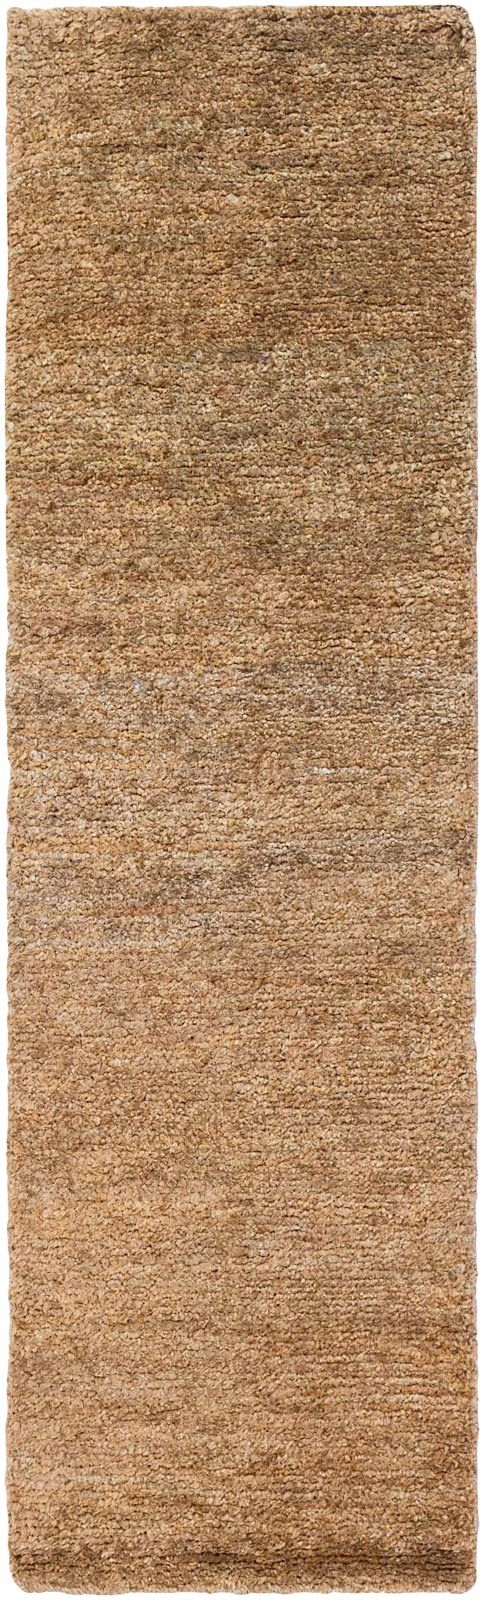 surya essential contemporary area rug collection